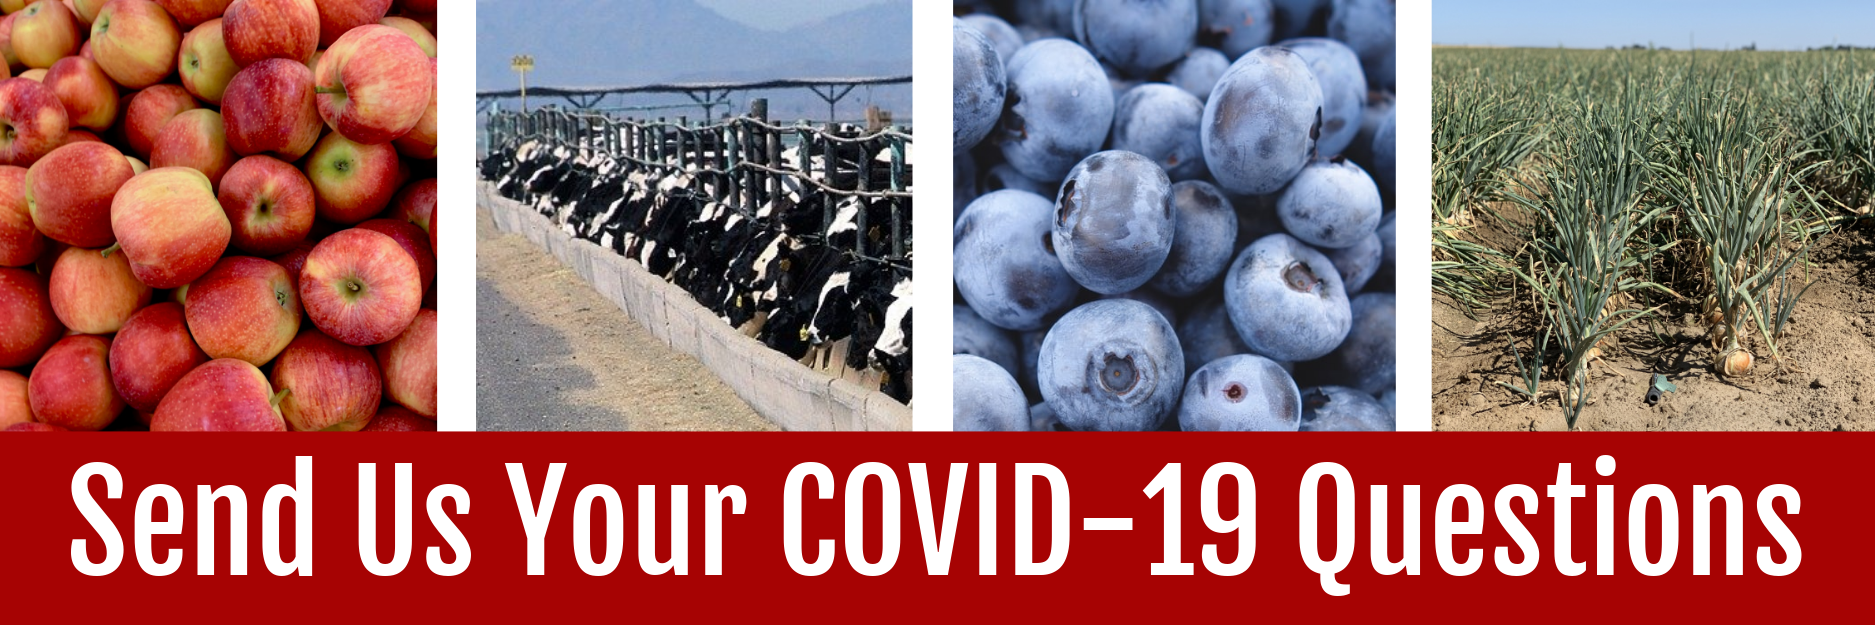 Send Us Your COVID-19 Questions